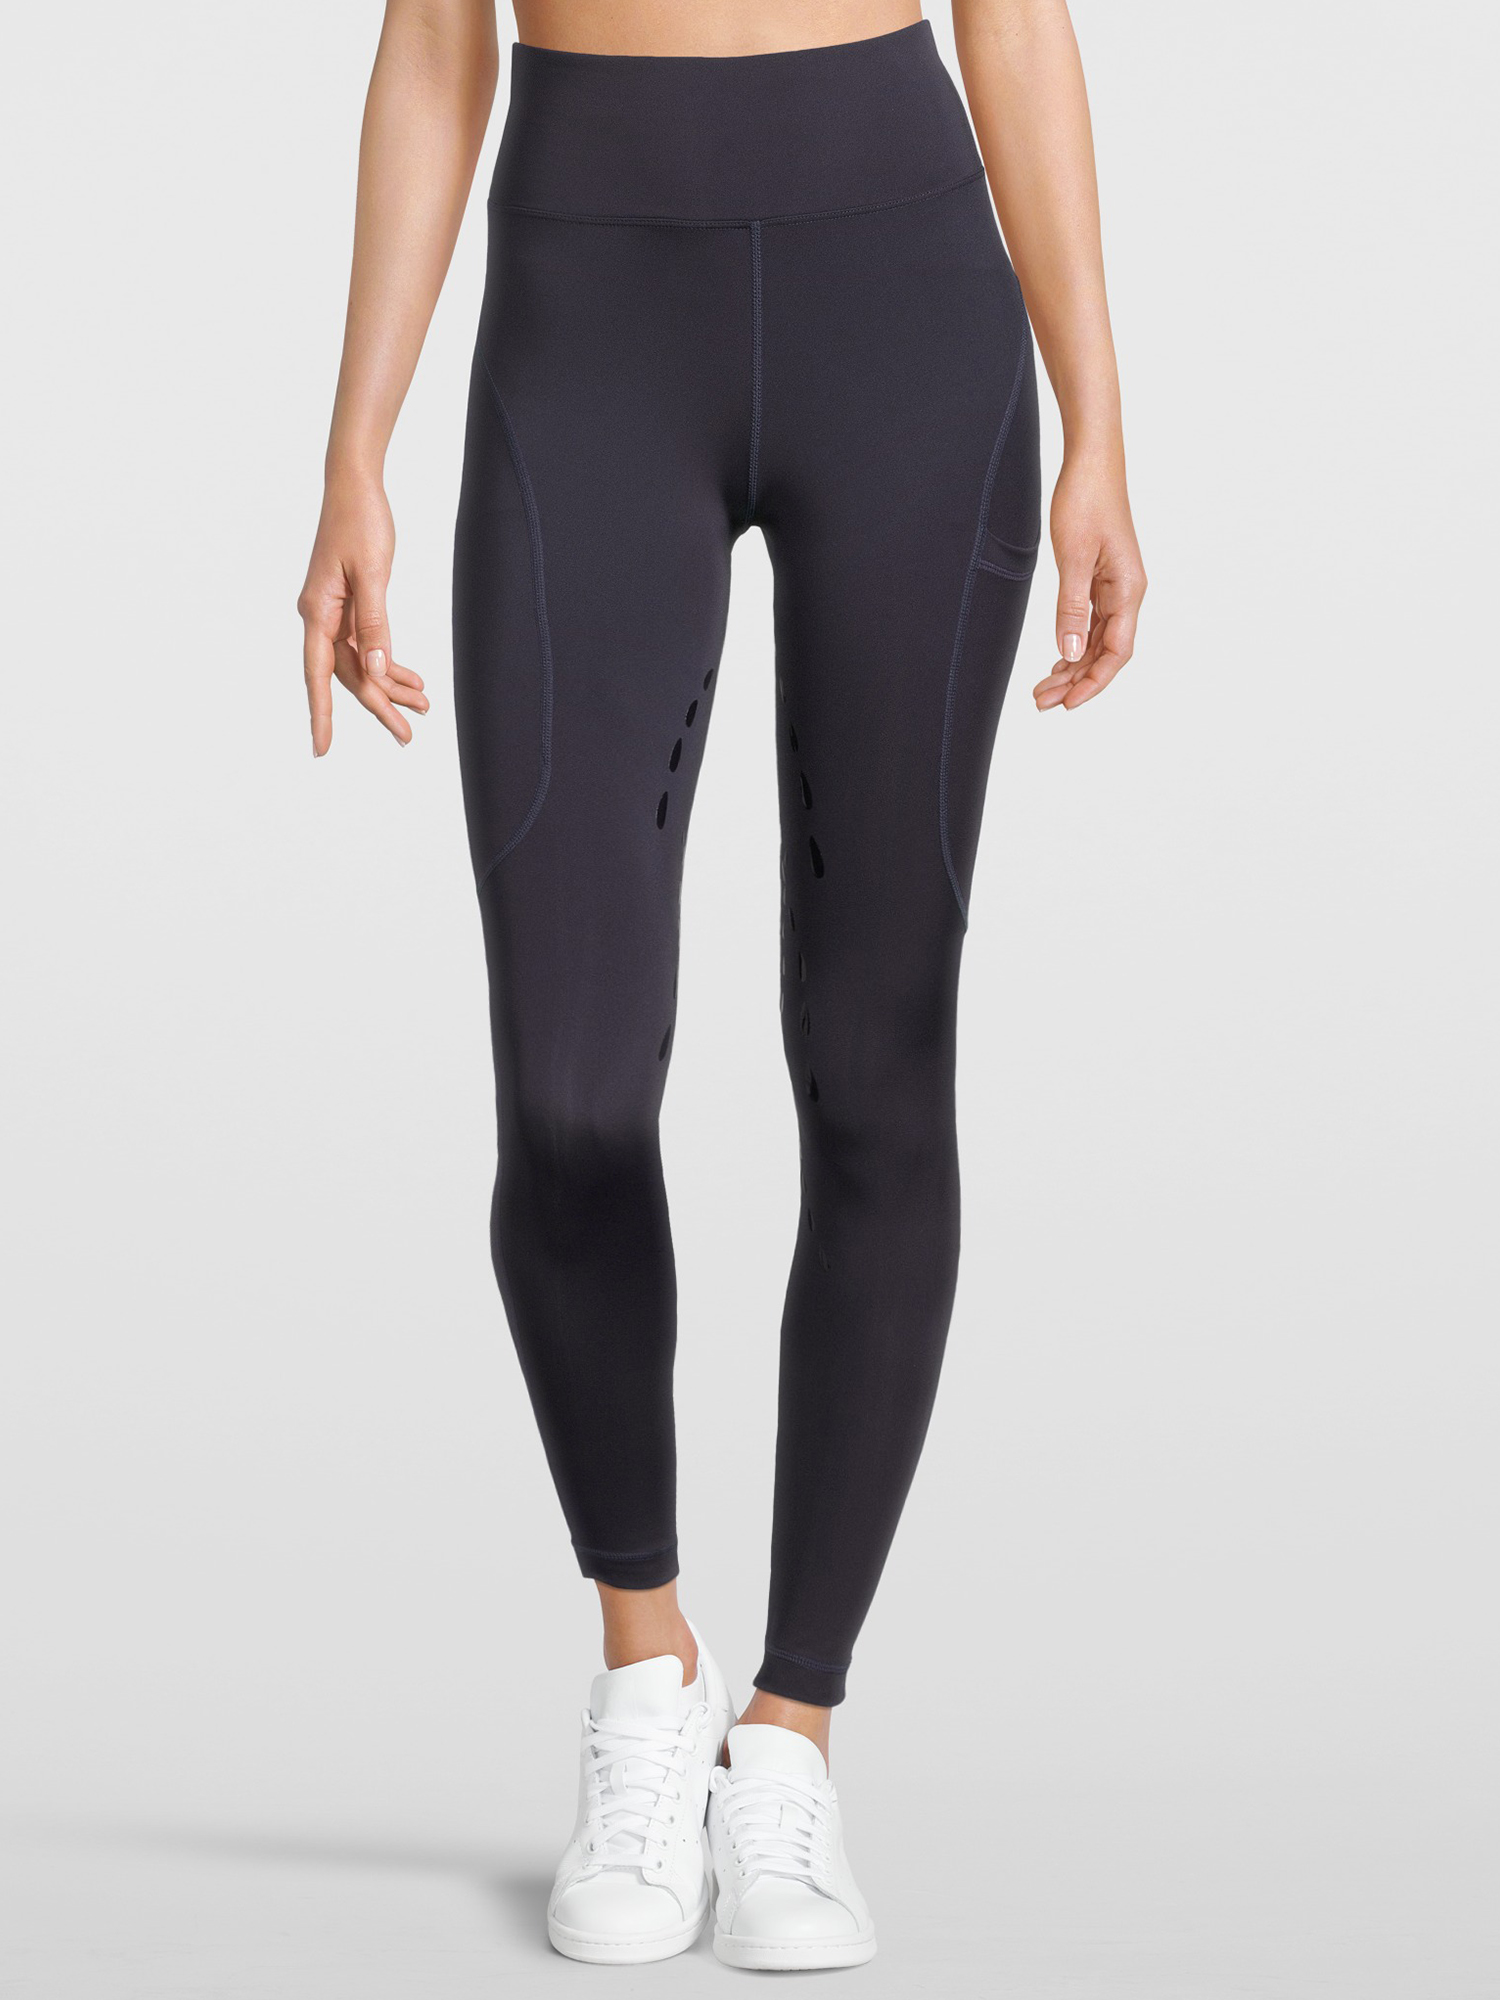 PS of Sweden Reithose, Reitleggings, Taylor, navy